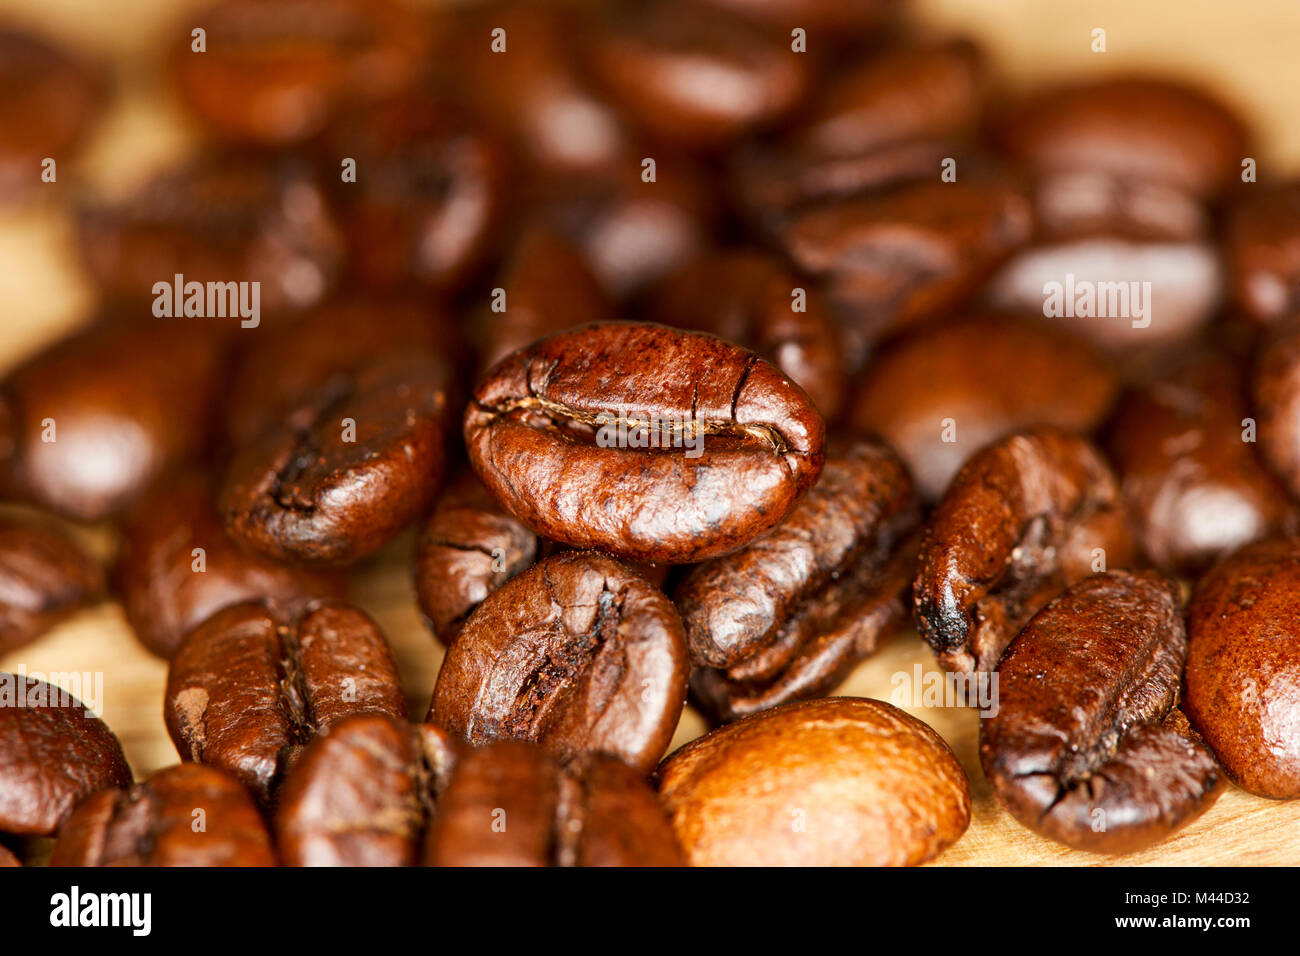 robusta and arabica blend of roasted coffee beans - Stock Image